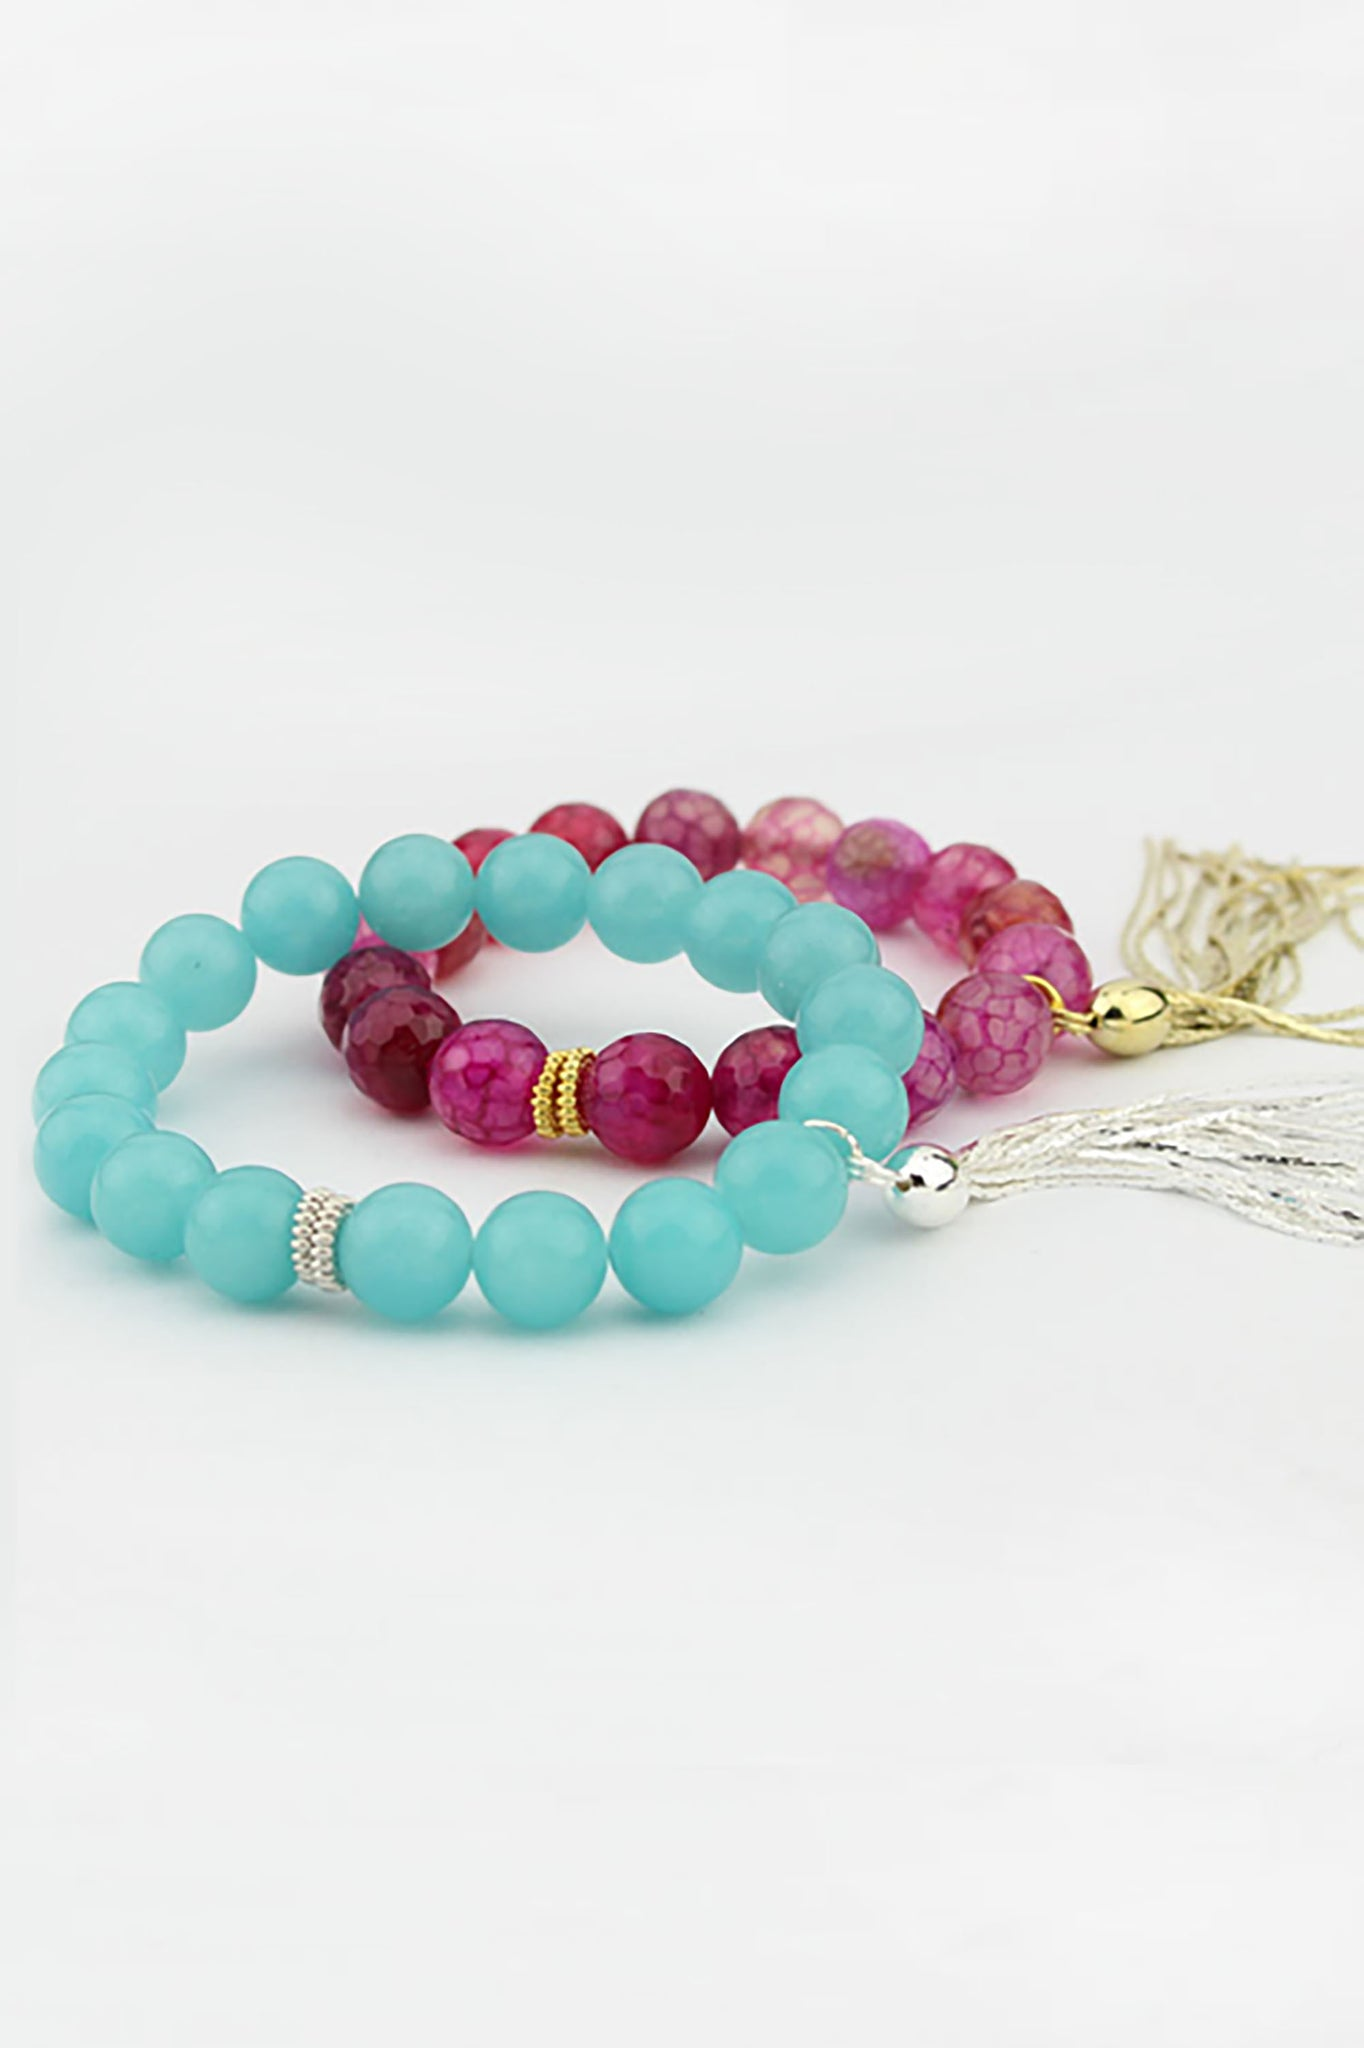 A set of Good Intention bracelets